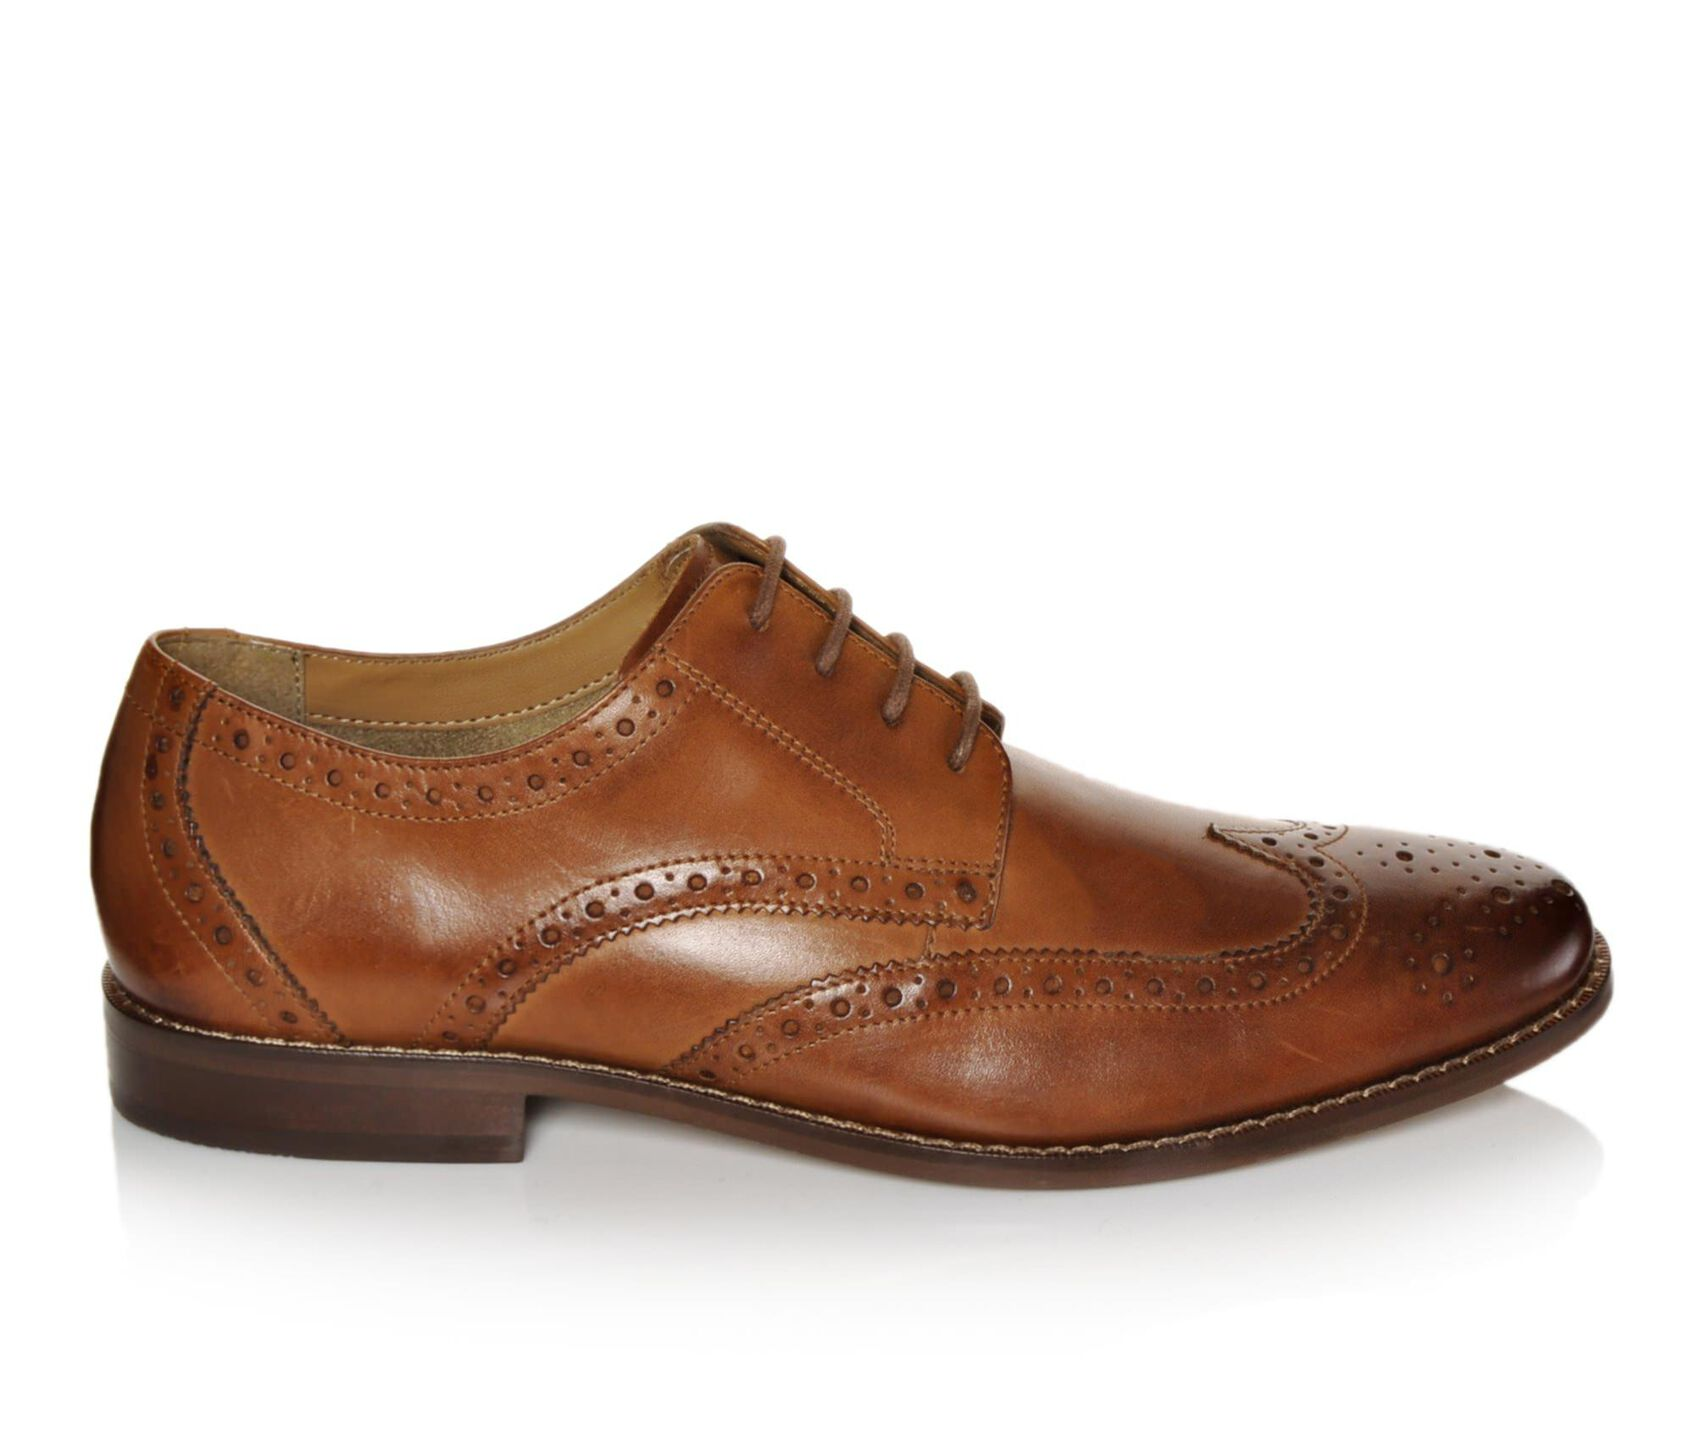 Shop for men's oxford shoes online at DSW, where we carry a variety of dress and casual oxford styles such as wingtips and cap toe shoes in leather, suede, and other materials.